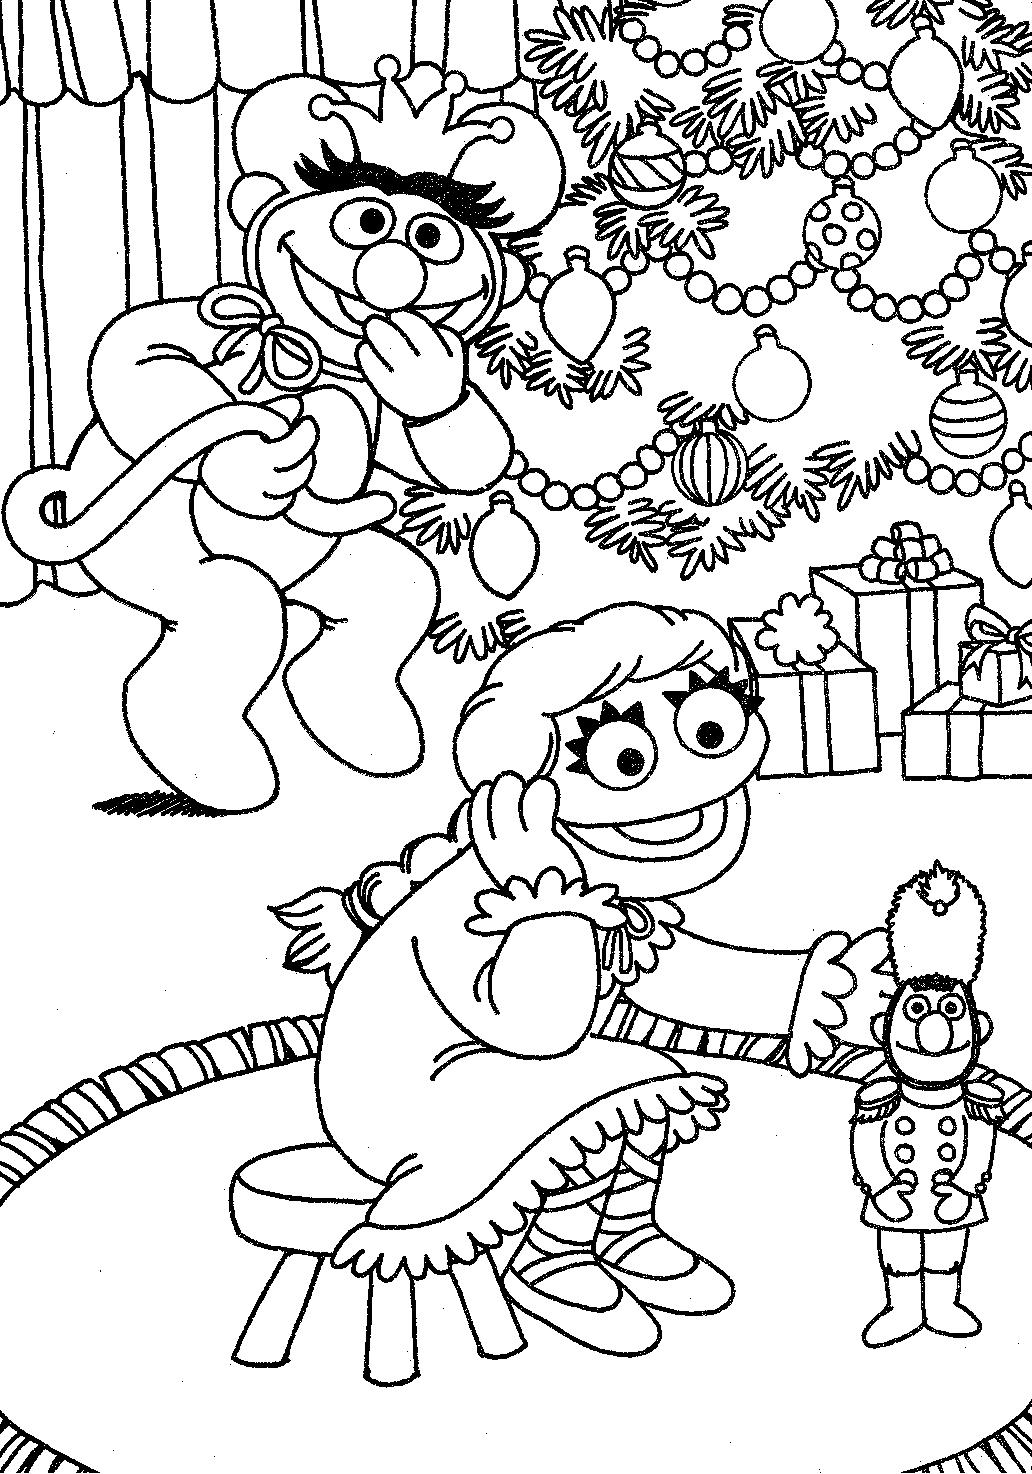 The nutcracker muppet wiki fandom powered by wikia Coloring book wiki